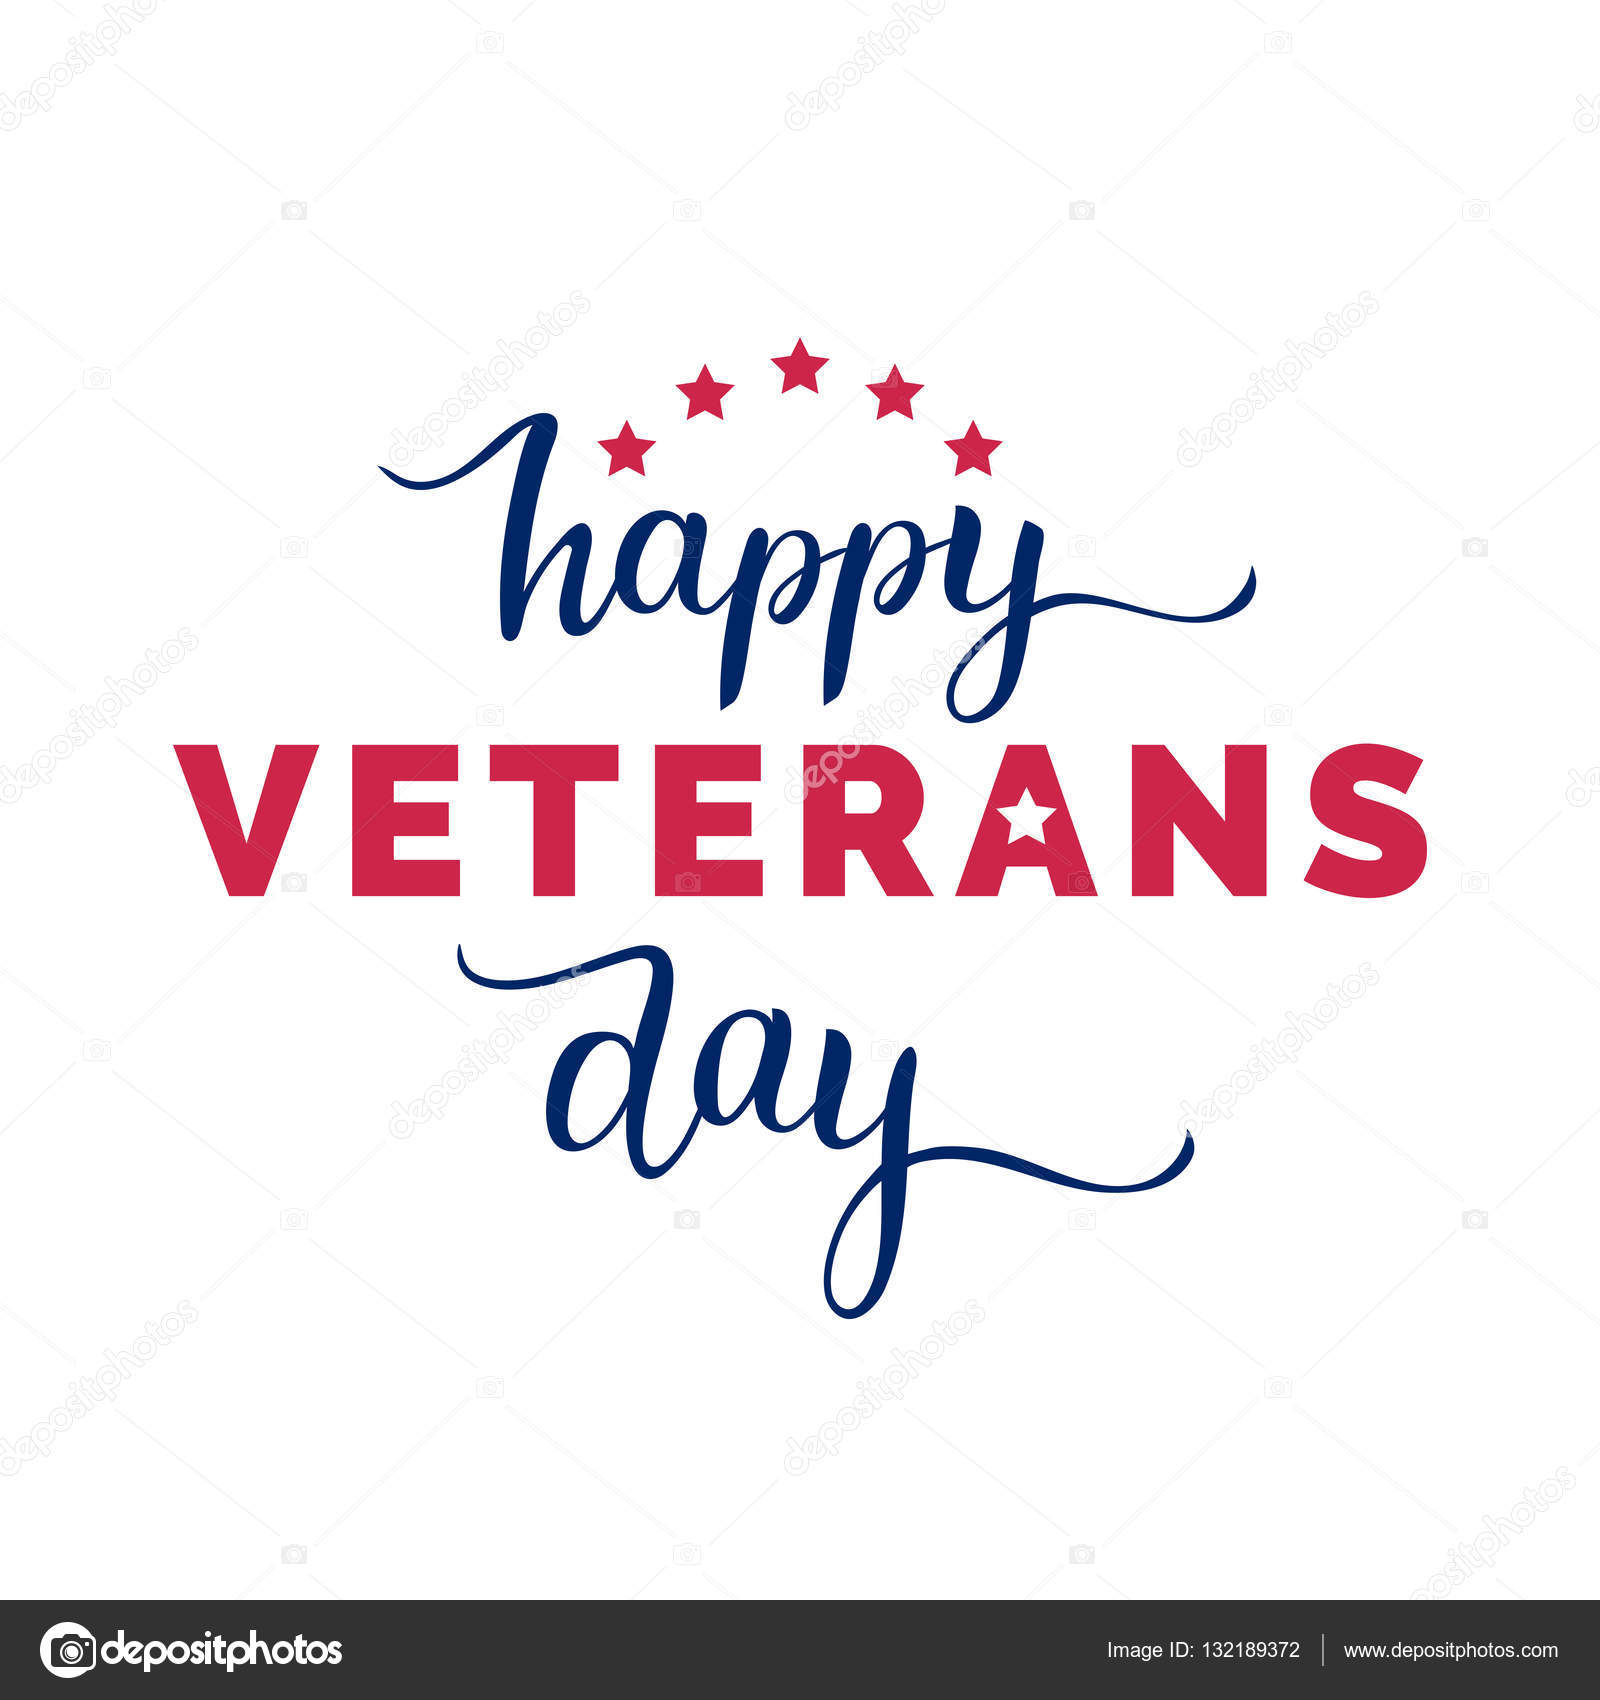 Veterans Day Greeting Card Stock Vector Vladayoung 132189372